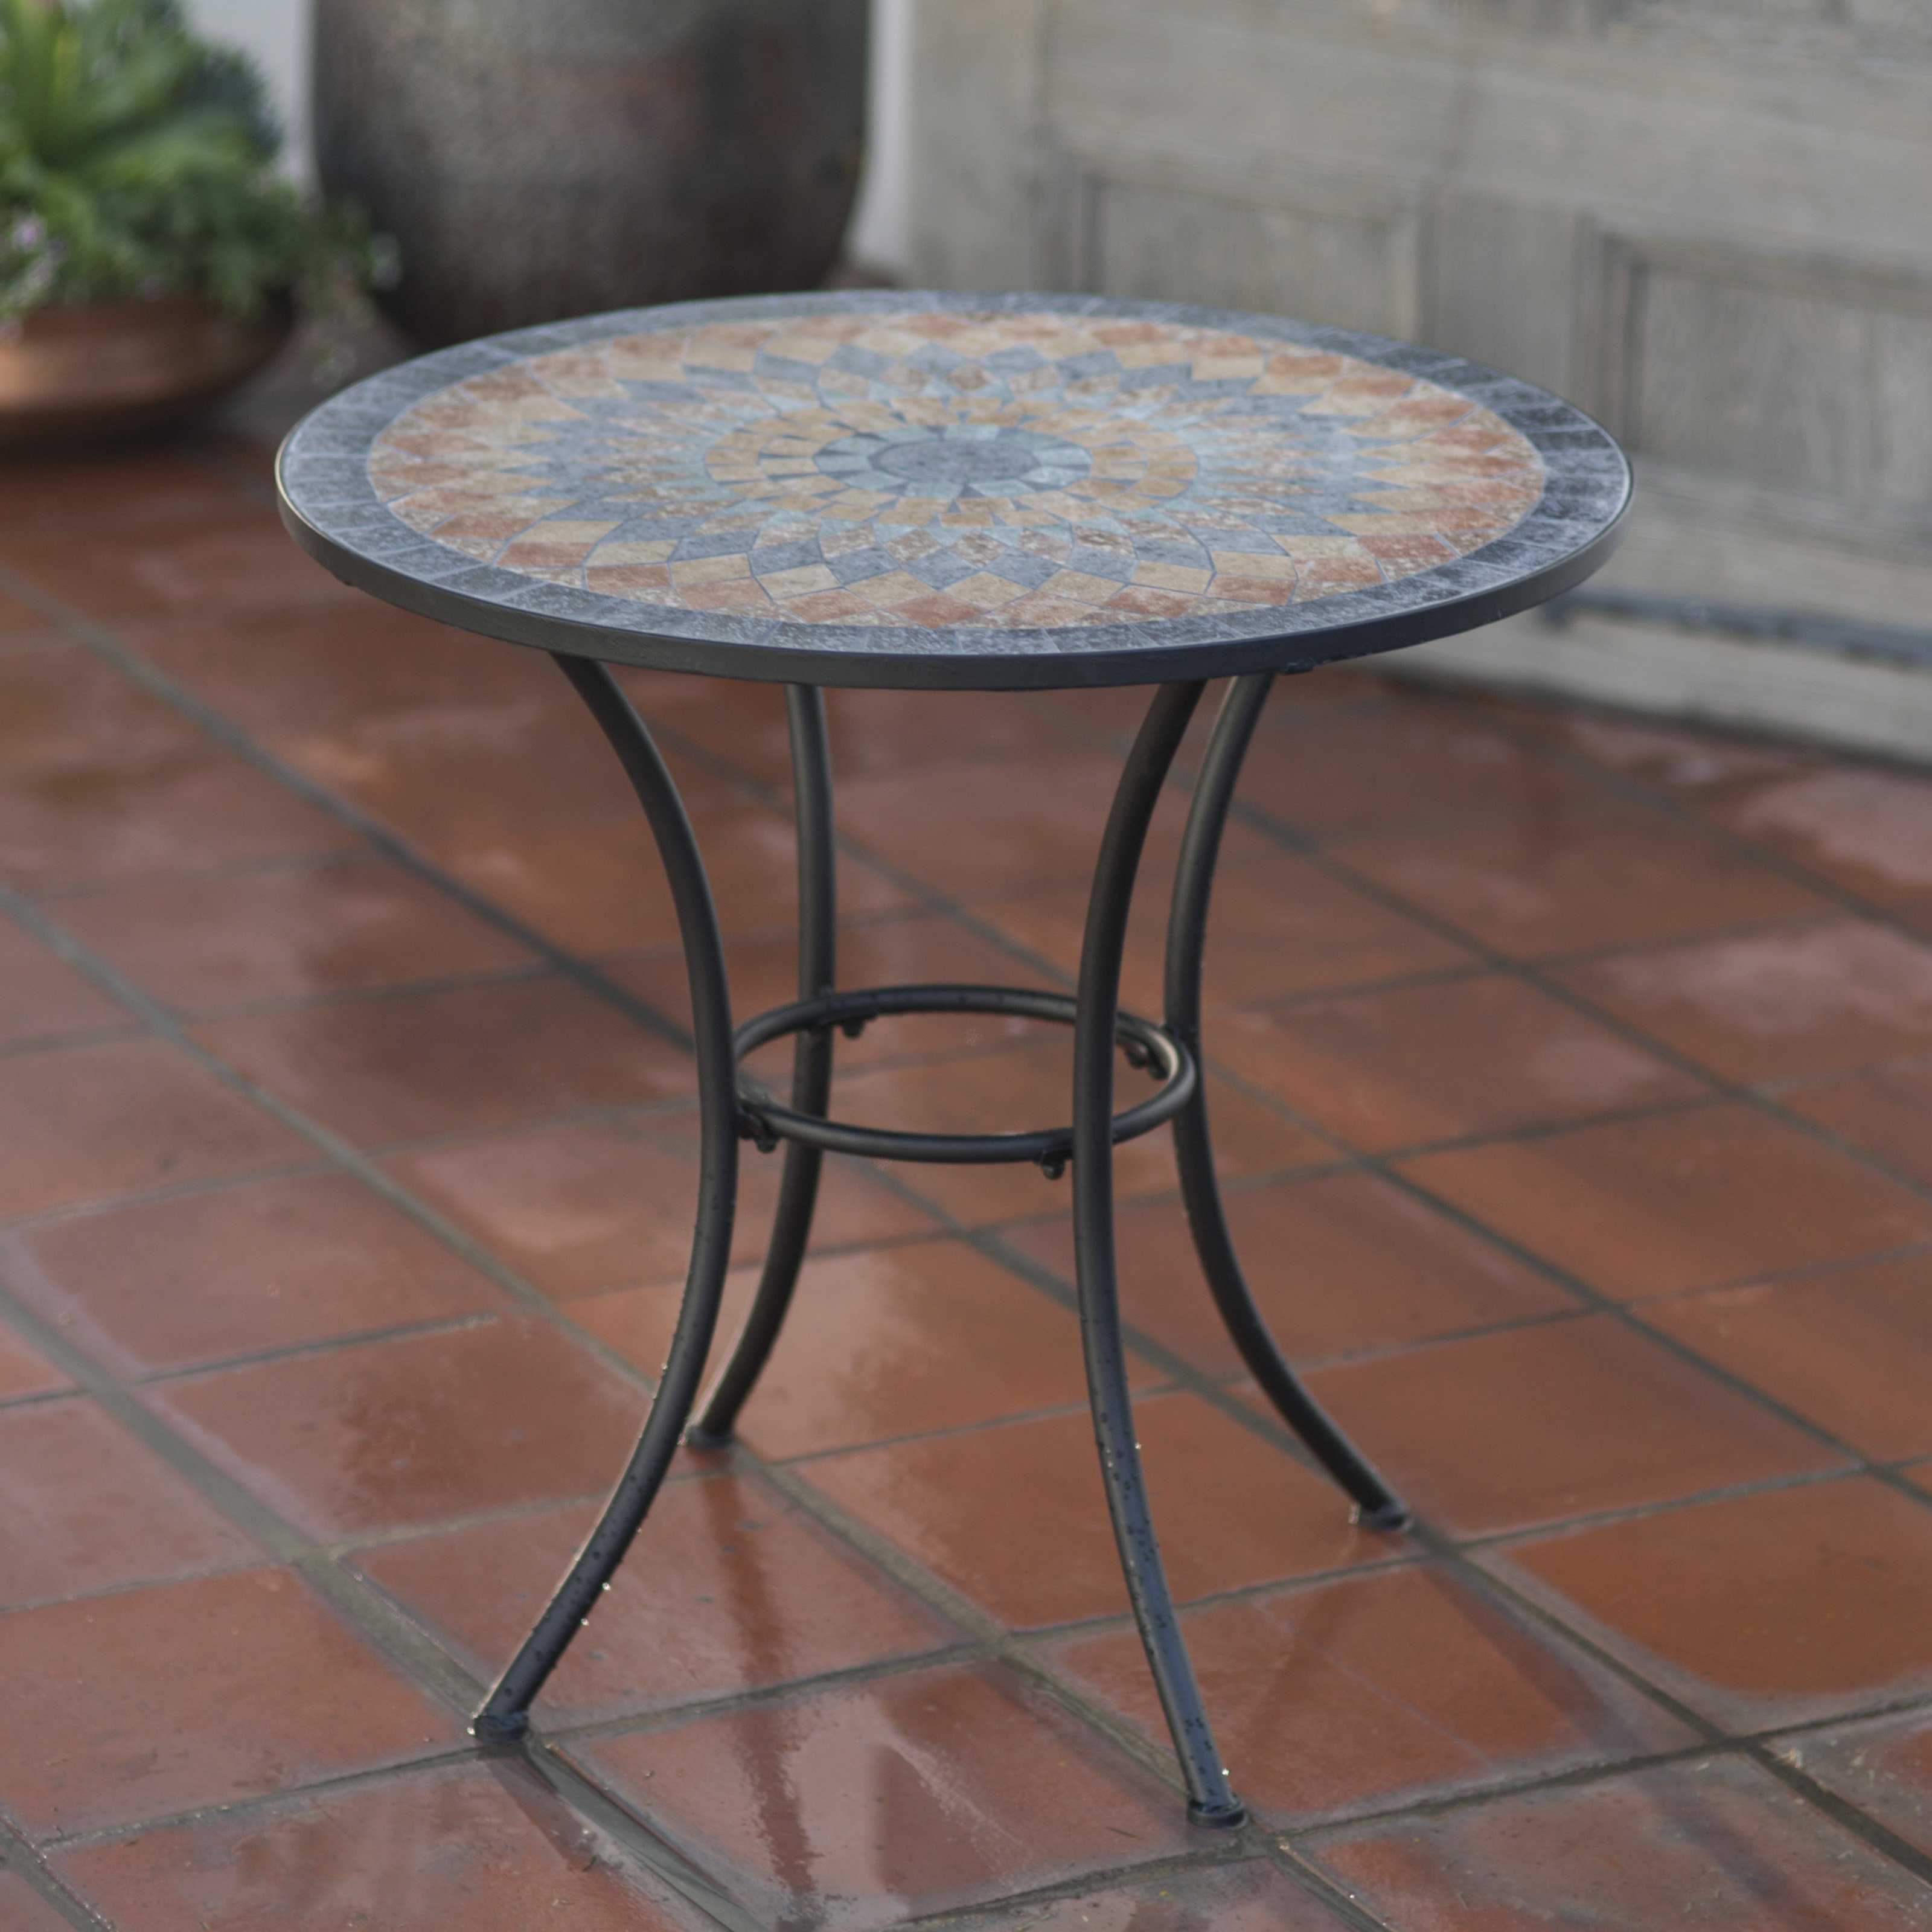 mosaic outdoor coffee table concept side tile modern ideas inlay decorating broken glass zaltana accent projects craft art small iron white patio chairs battery powered lamps